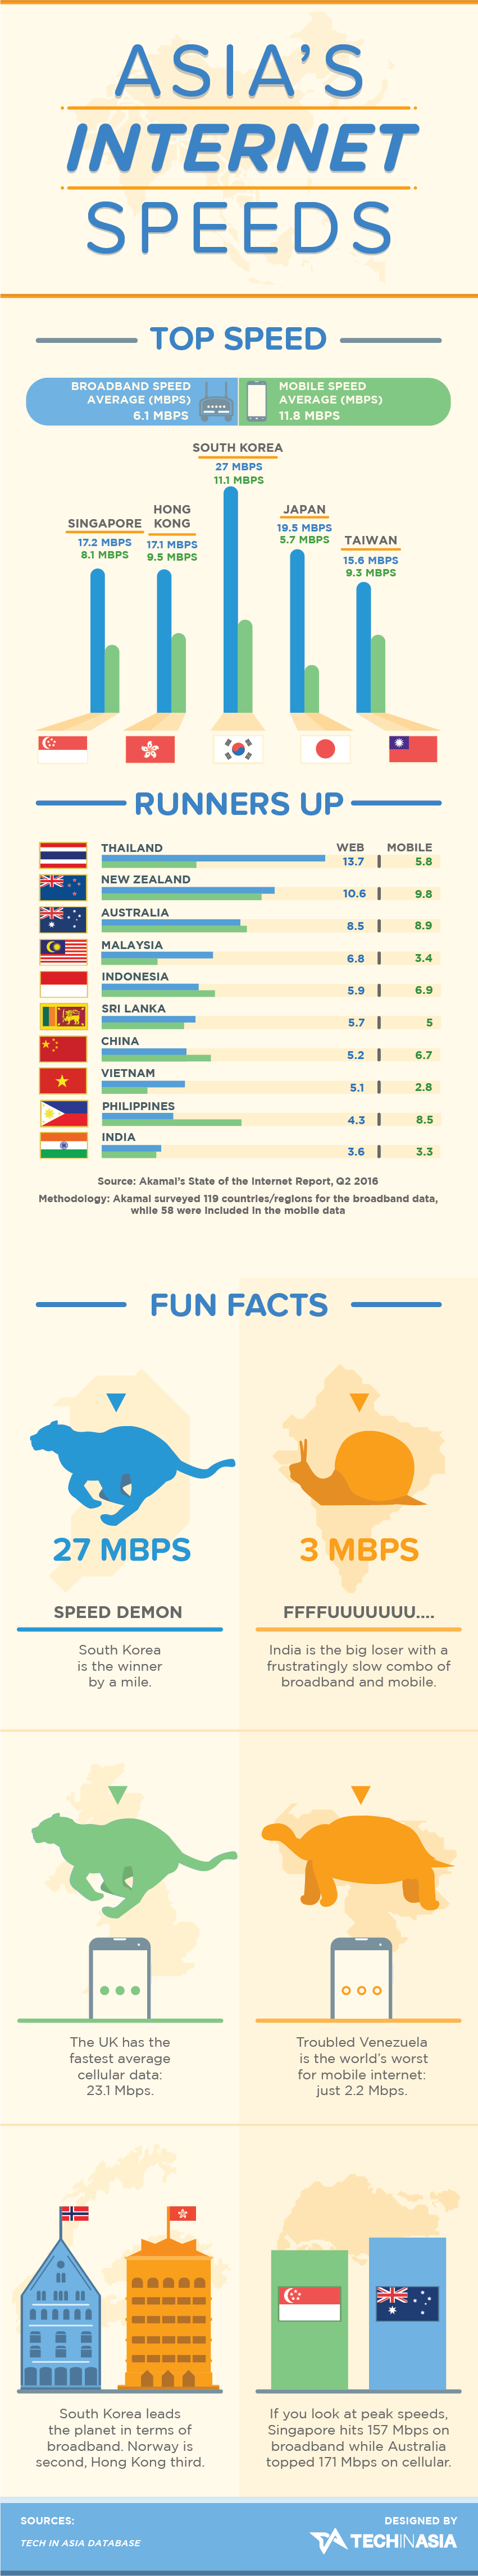 Asia's mobile and broadband internet speeds (Infographic)